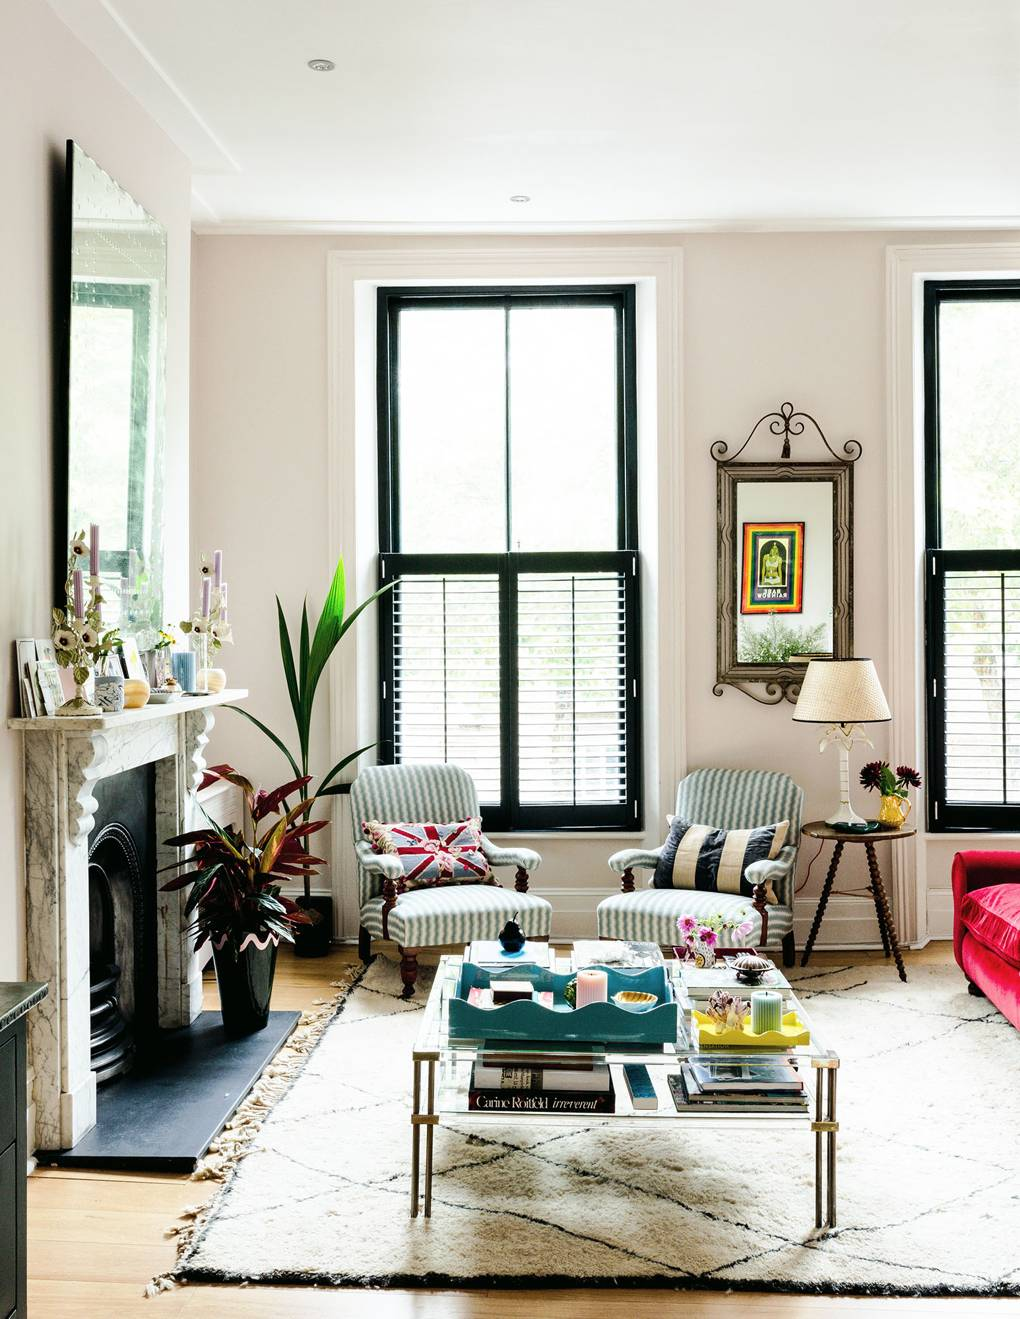 Matilda Goad's Notting Hill Living Room with Beni Ourain Rug and Marble Fireplace